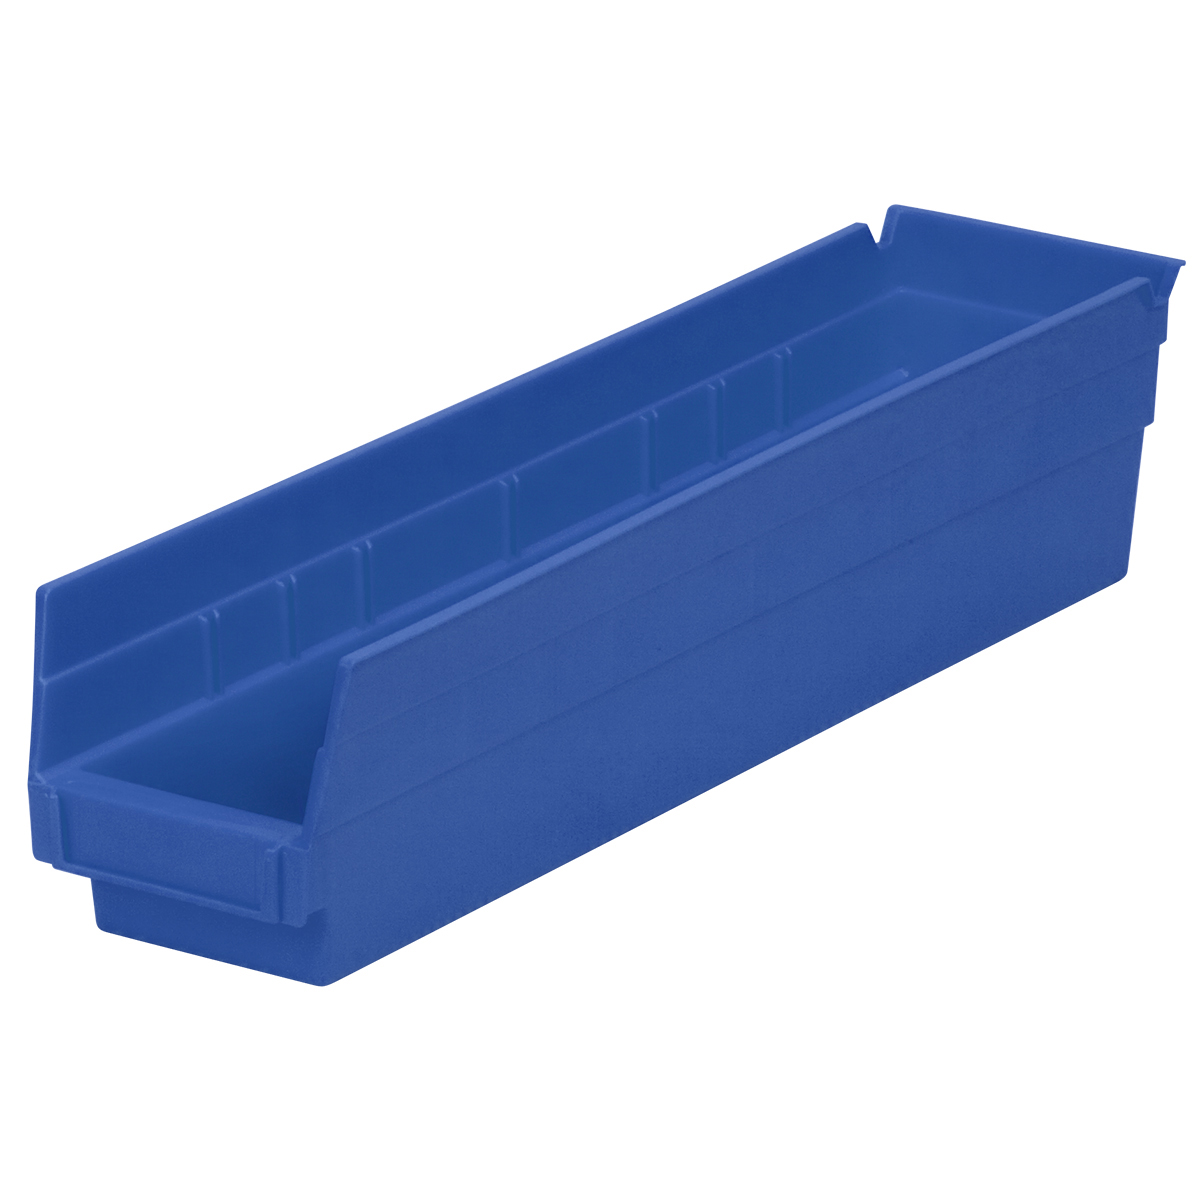 Shelf Bin 17-7/8 x 4-1/8 x 4, Blue (30128BLUE).  This item sold in carton quantities of 12.